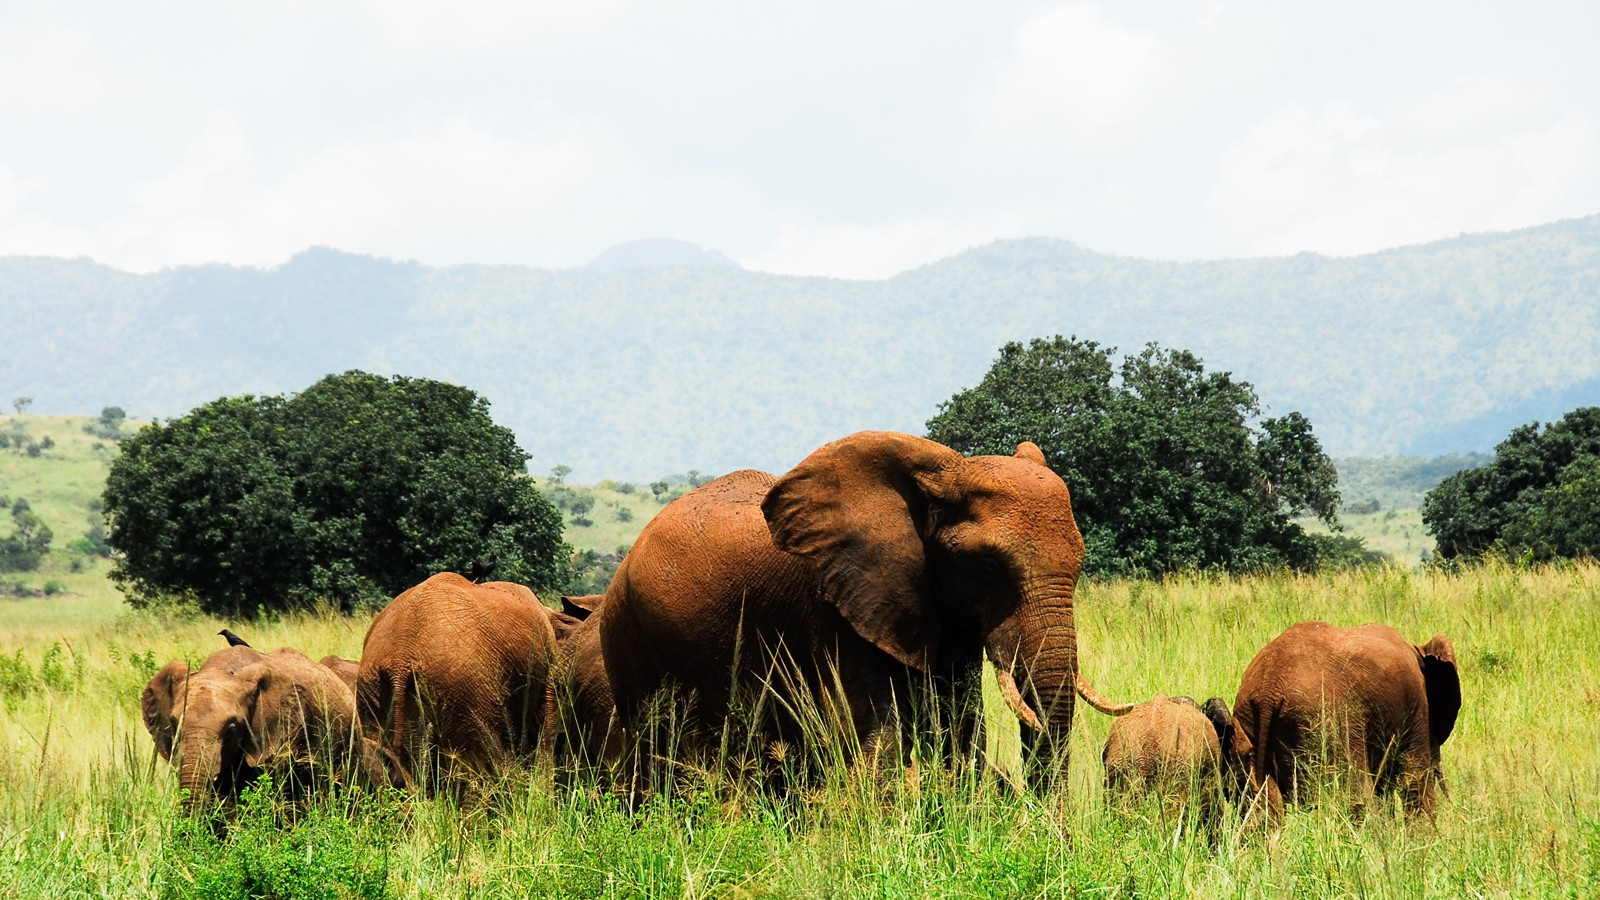 Herd of elephants, Kidepo Valley National Park (Uganda)